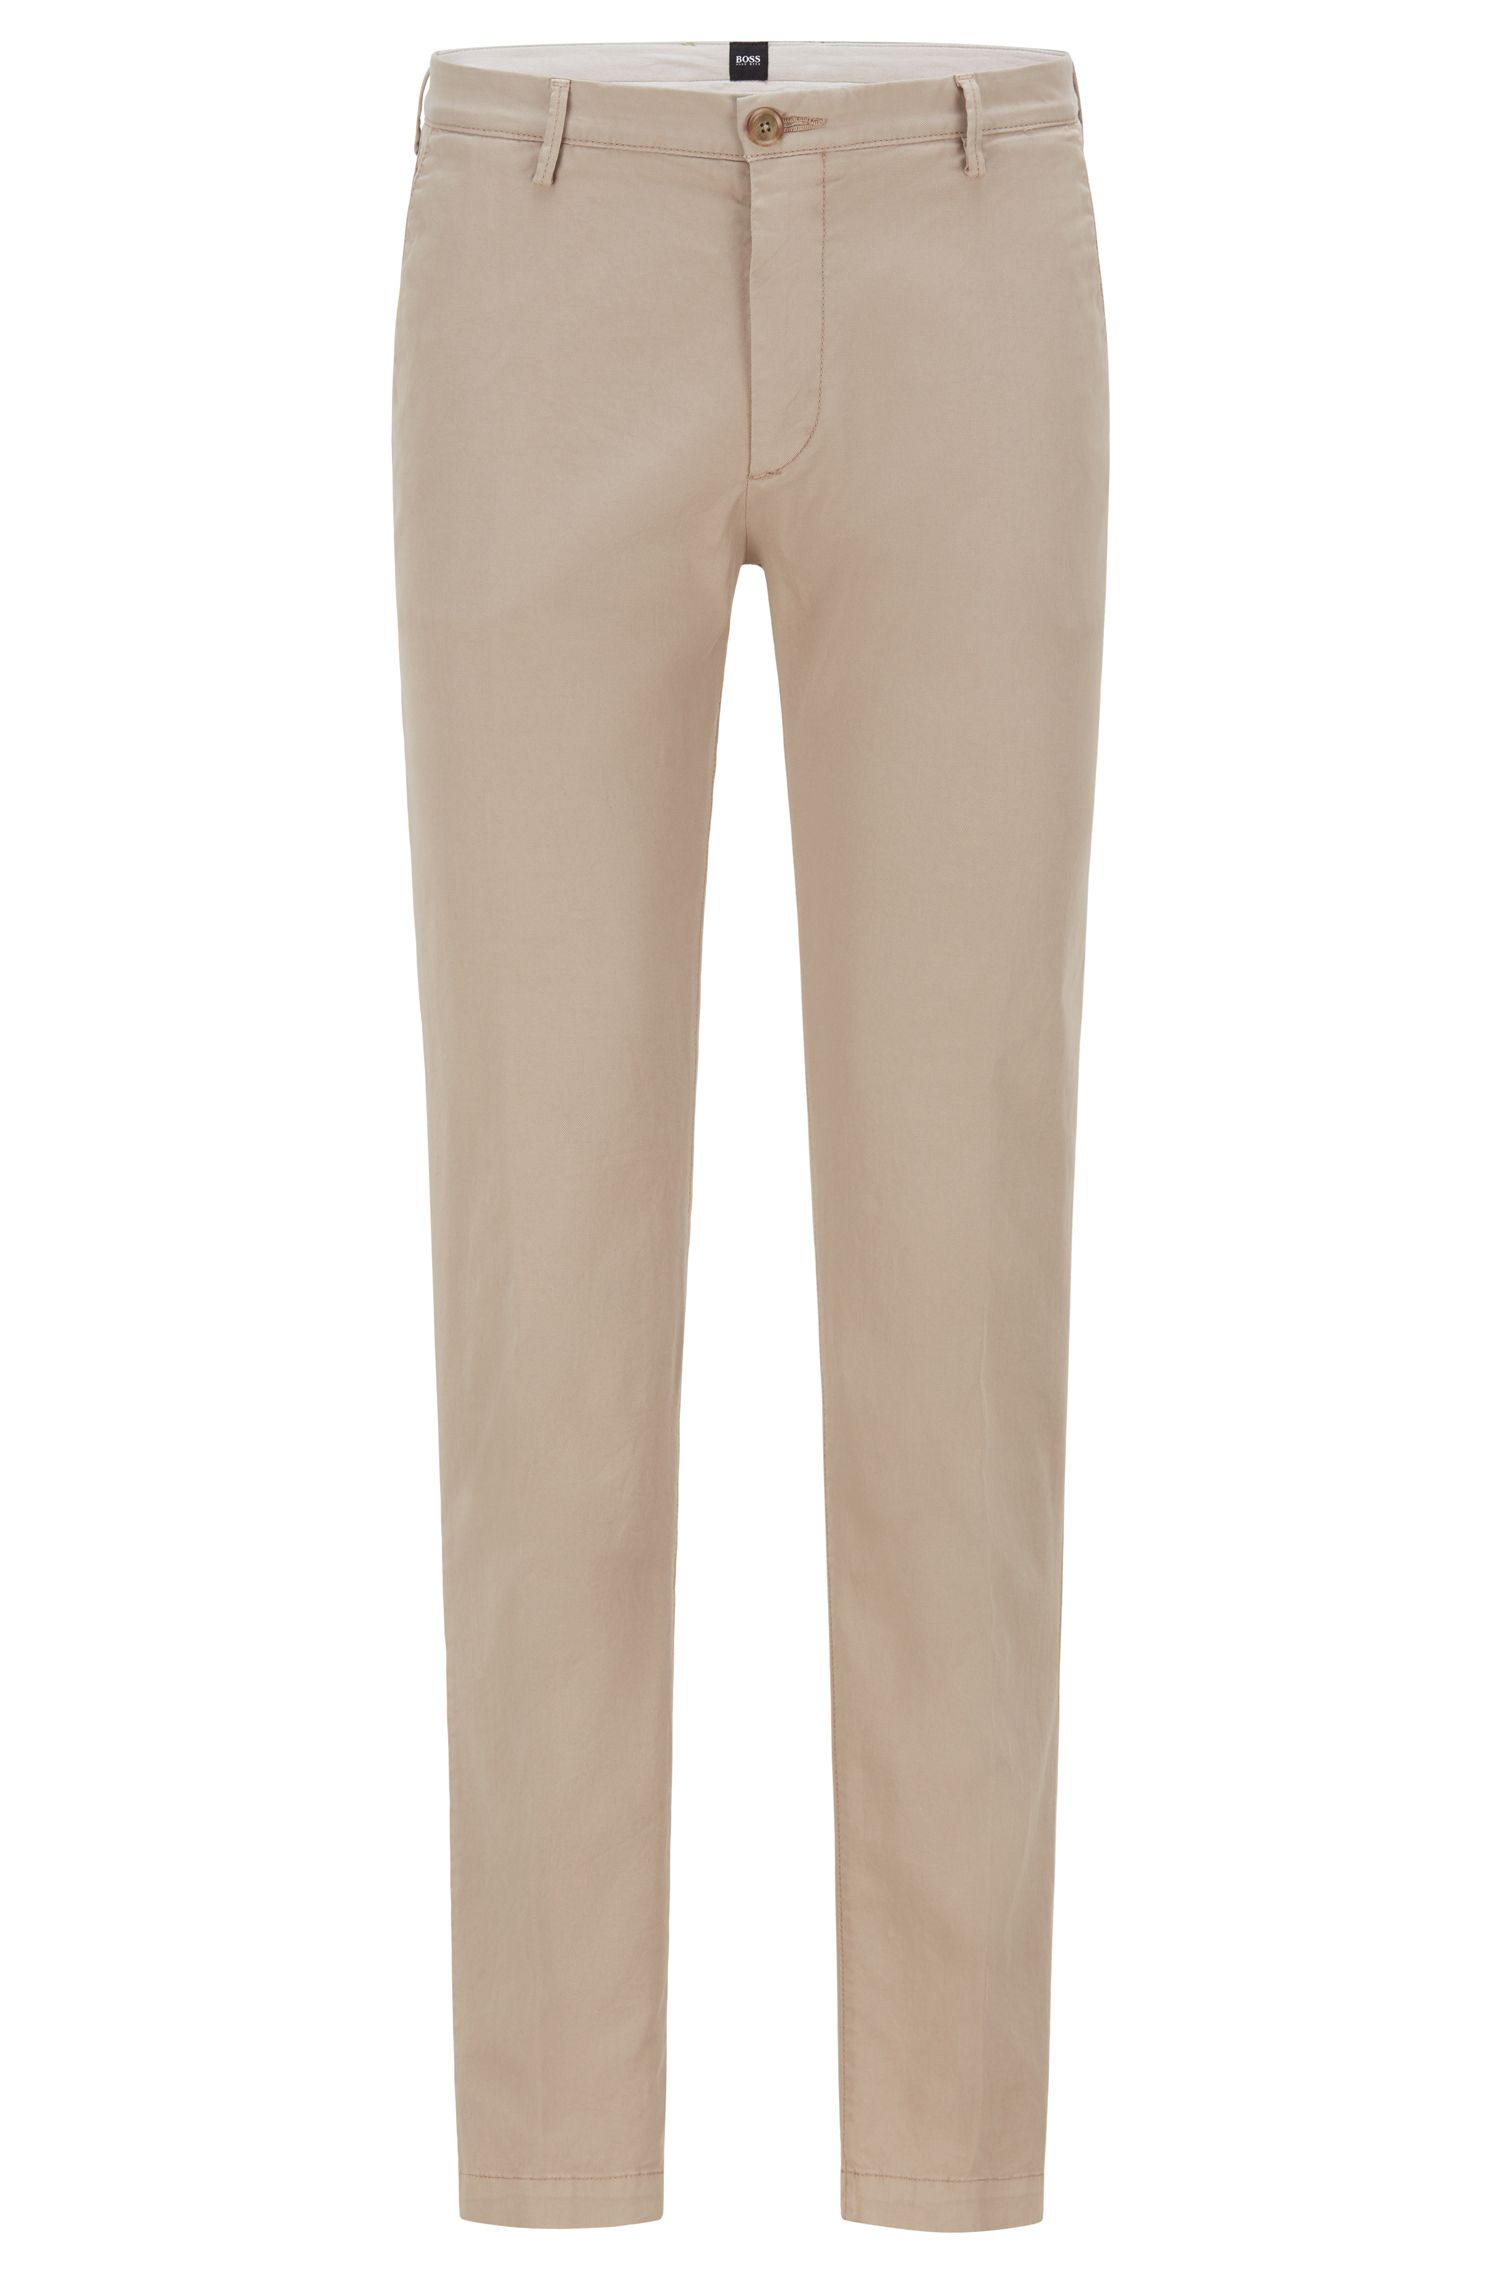 Cotton Stretch Chino Pant, Slim Fit | Rice D, Open Beige